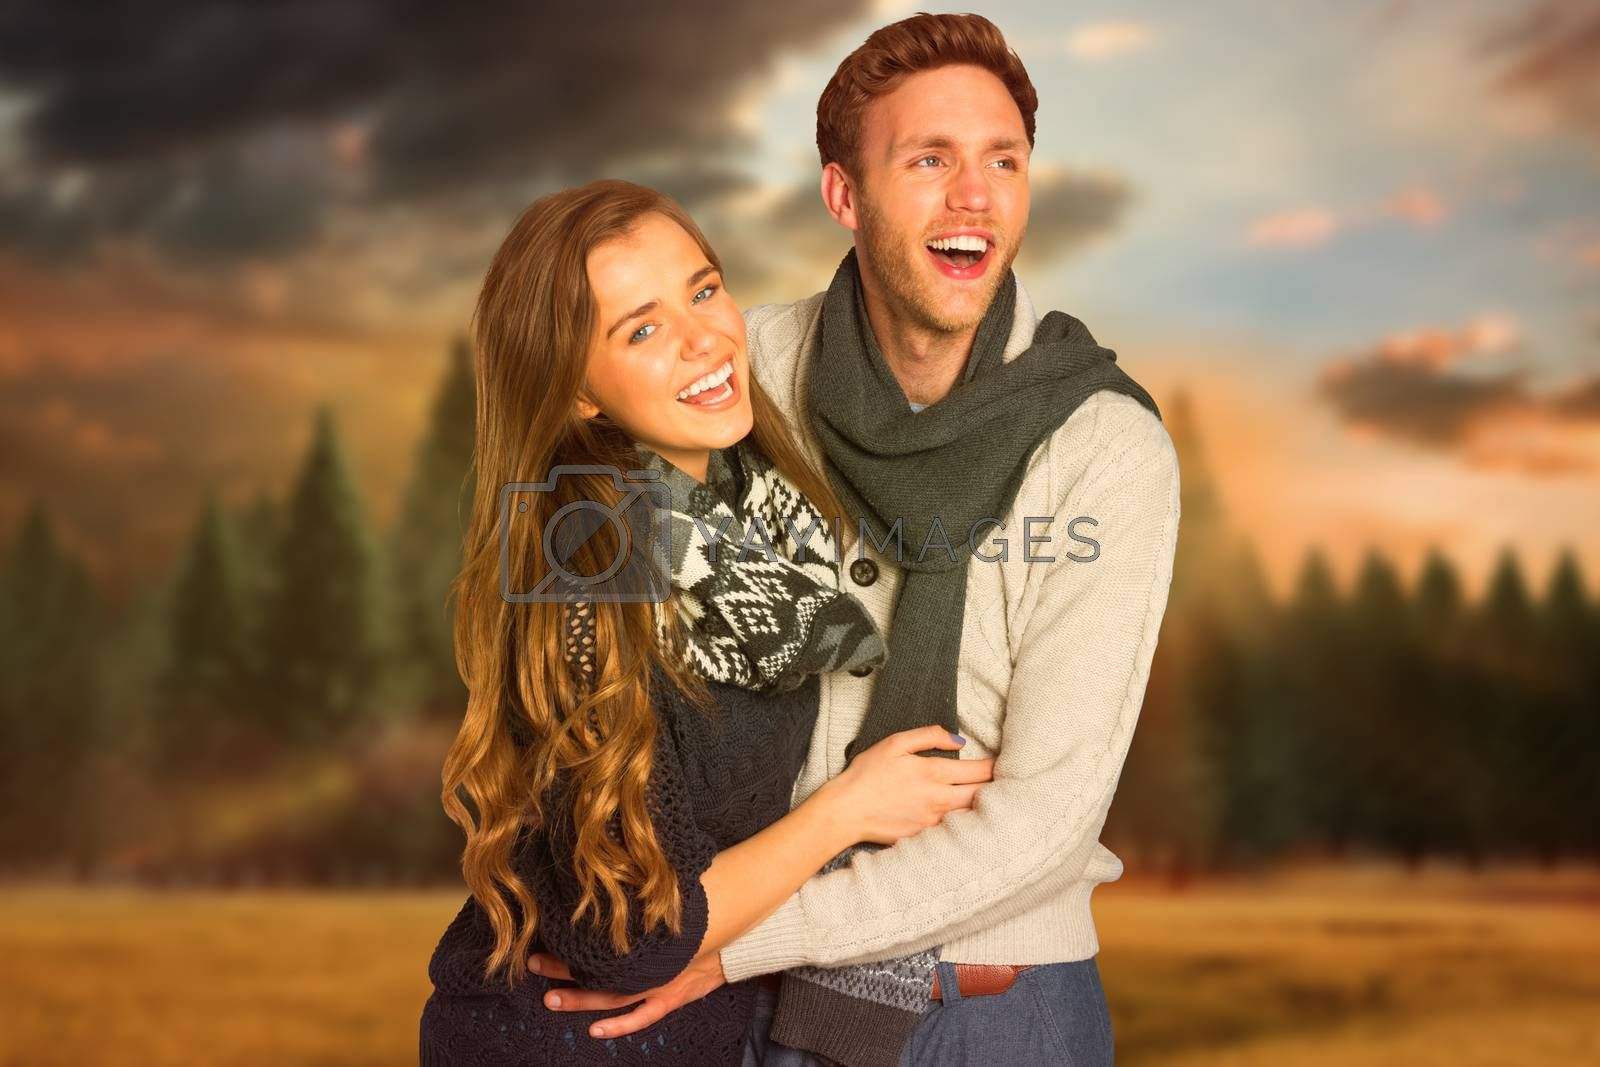 Composite image of happy young couple embracing by Wavebreakmedia